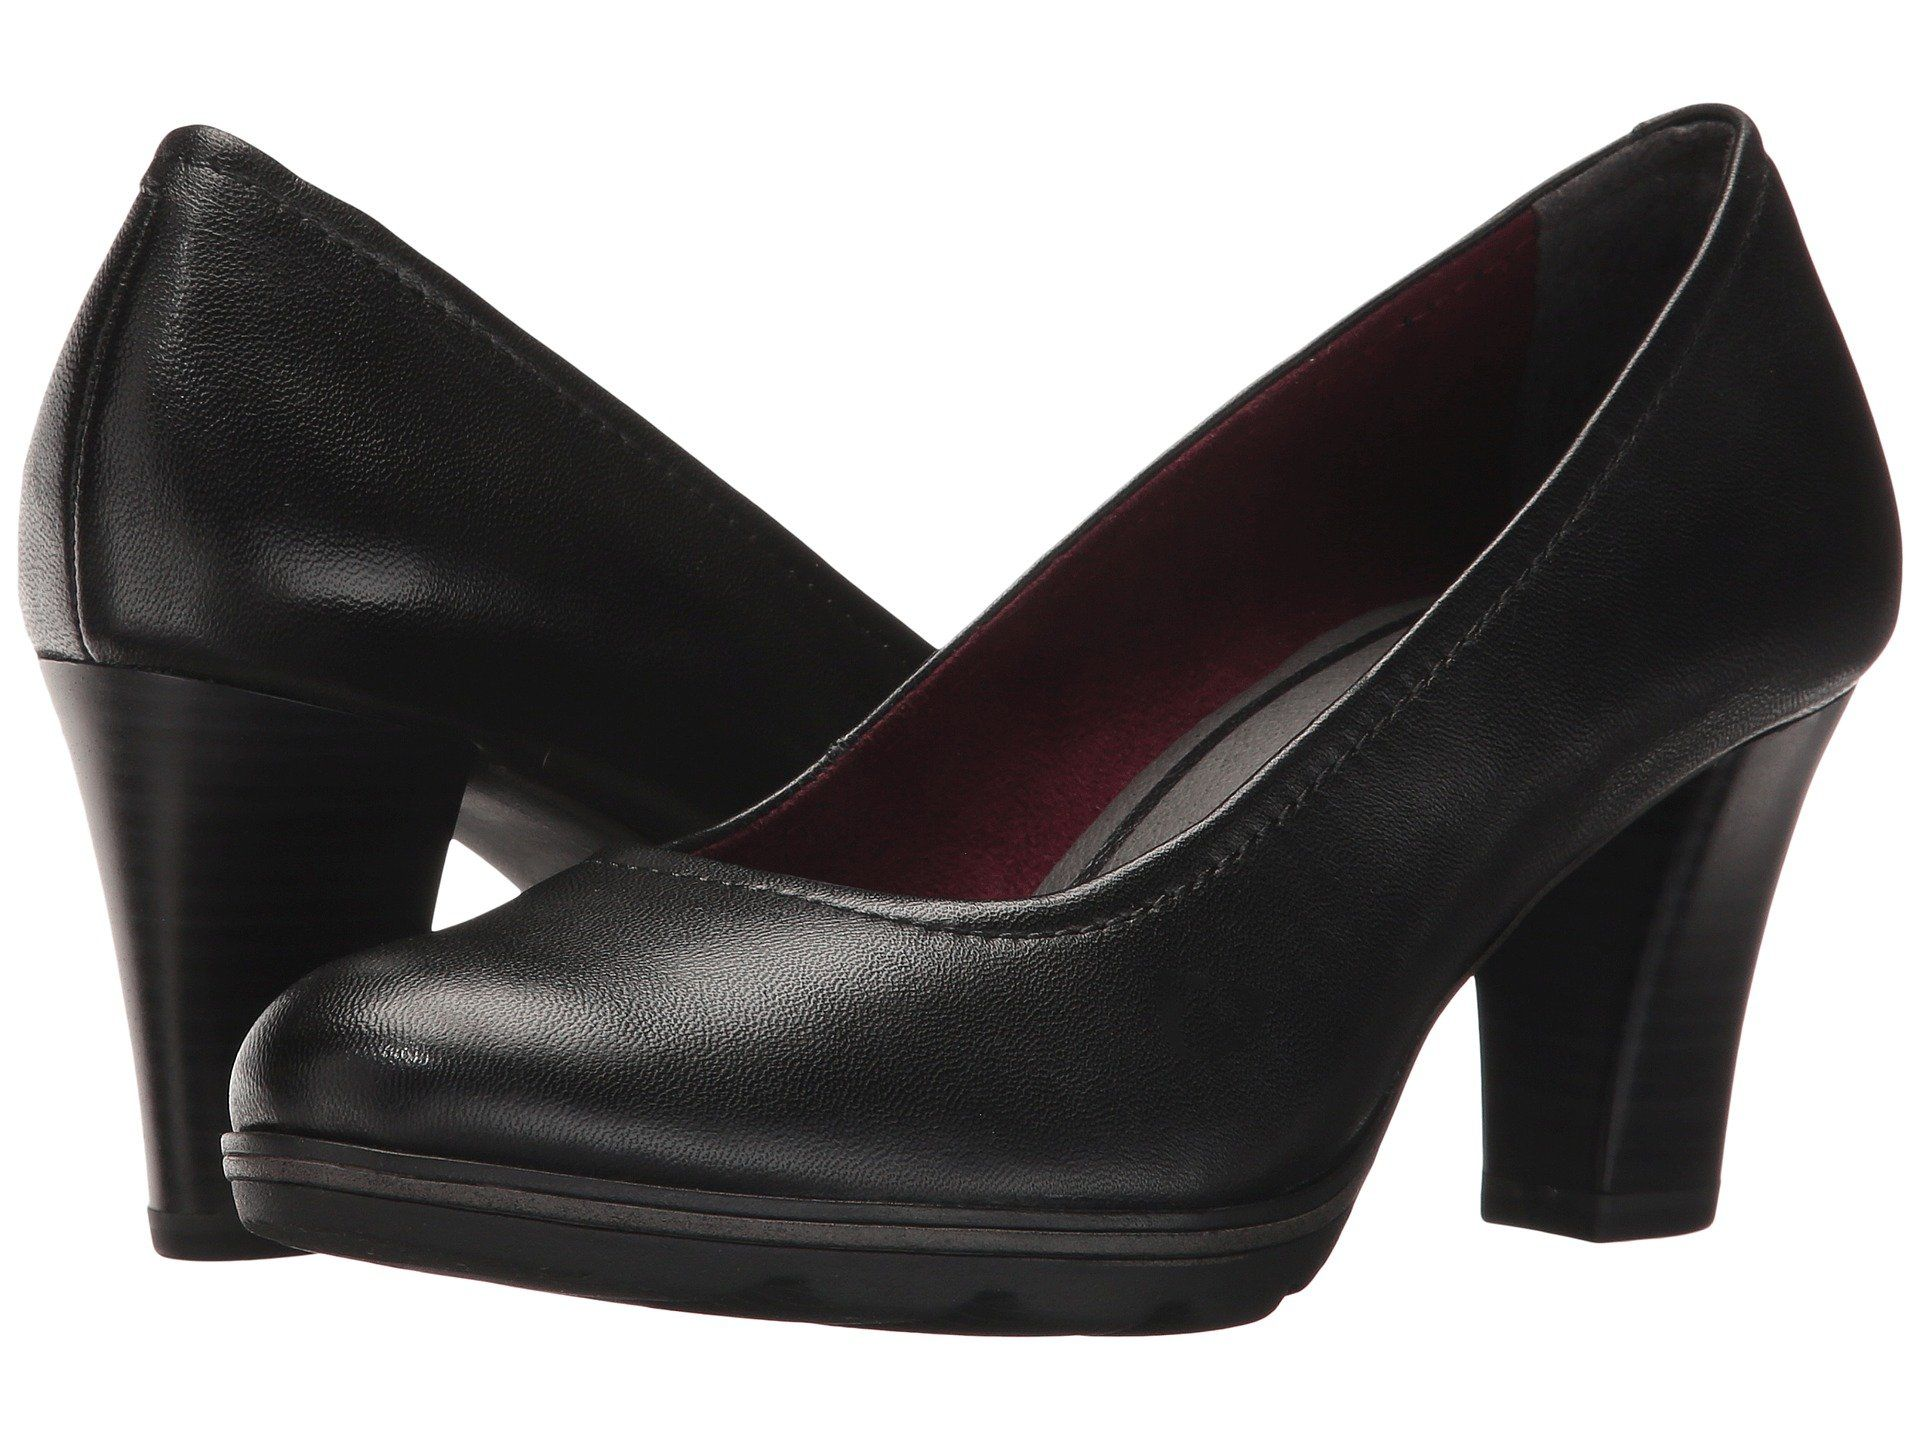 Womens 22425 Closed-Toe Pumps Tamaris mJfTu2ftd